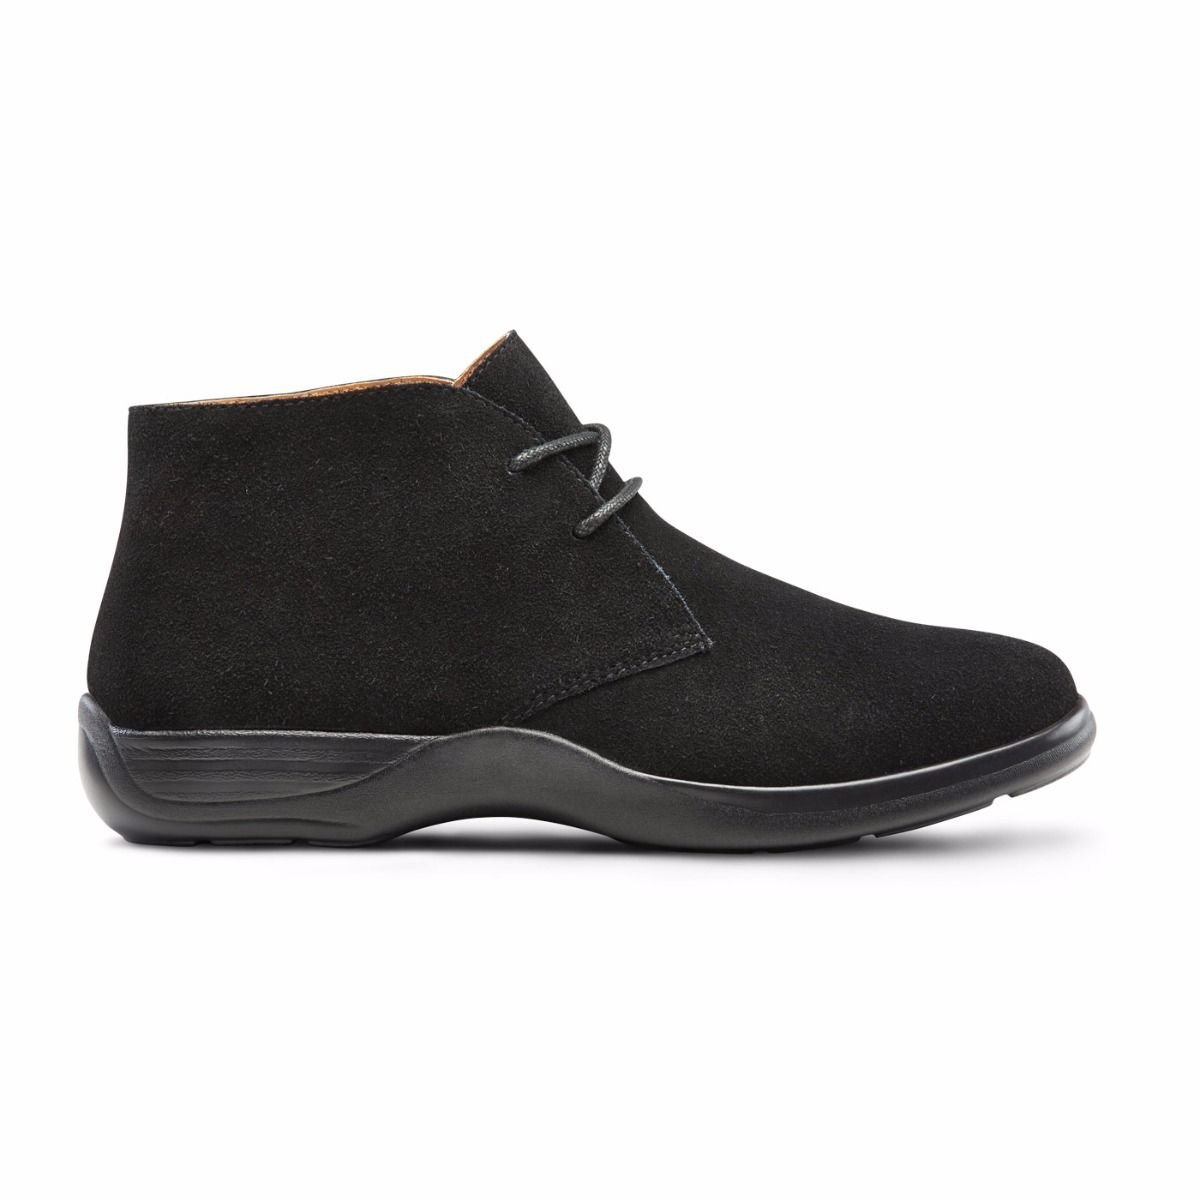 Dr. Comfort Women's Cara Casual Suede Leather Bootie Chukka Boot Black B076VVK3KT 4 WIDE (C/D) BLACK|Black